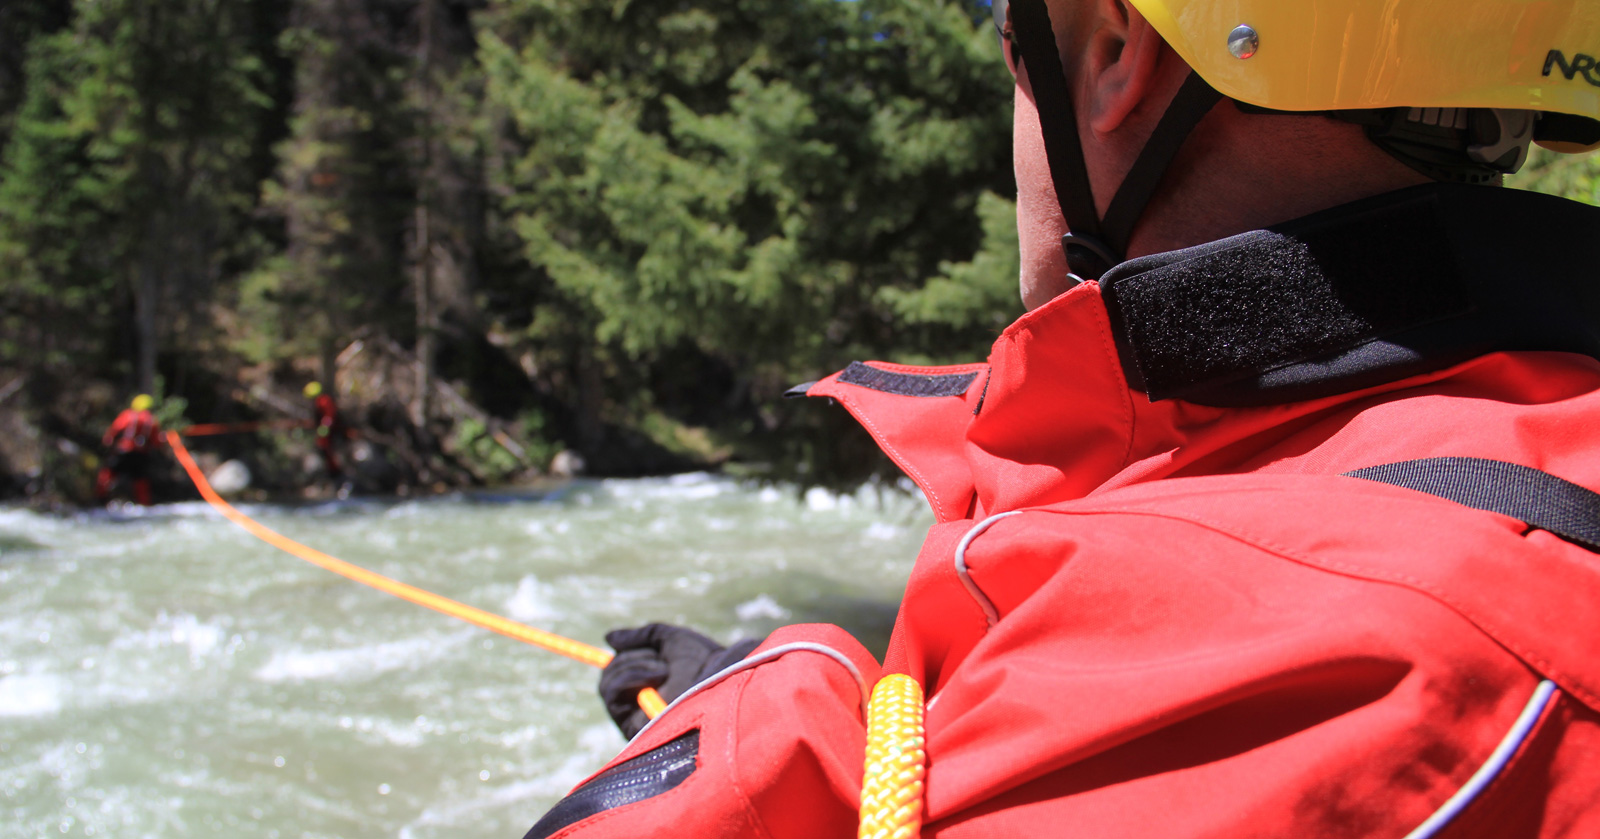 swiftwater-rescue-training-nfpa-1